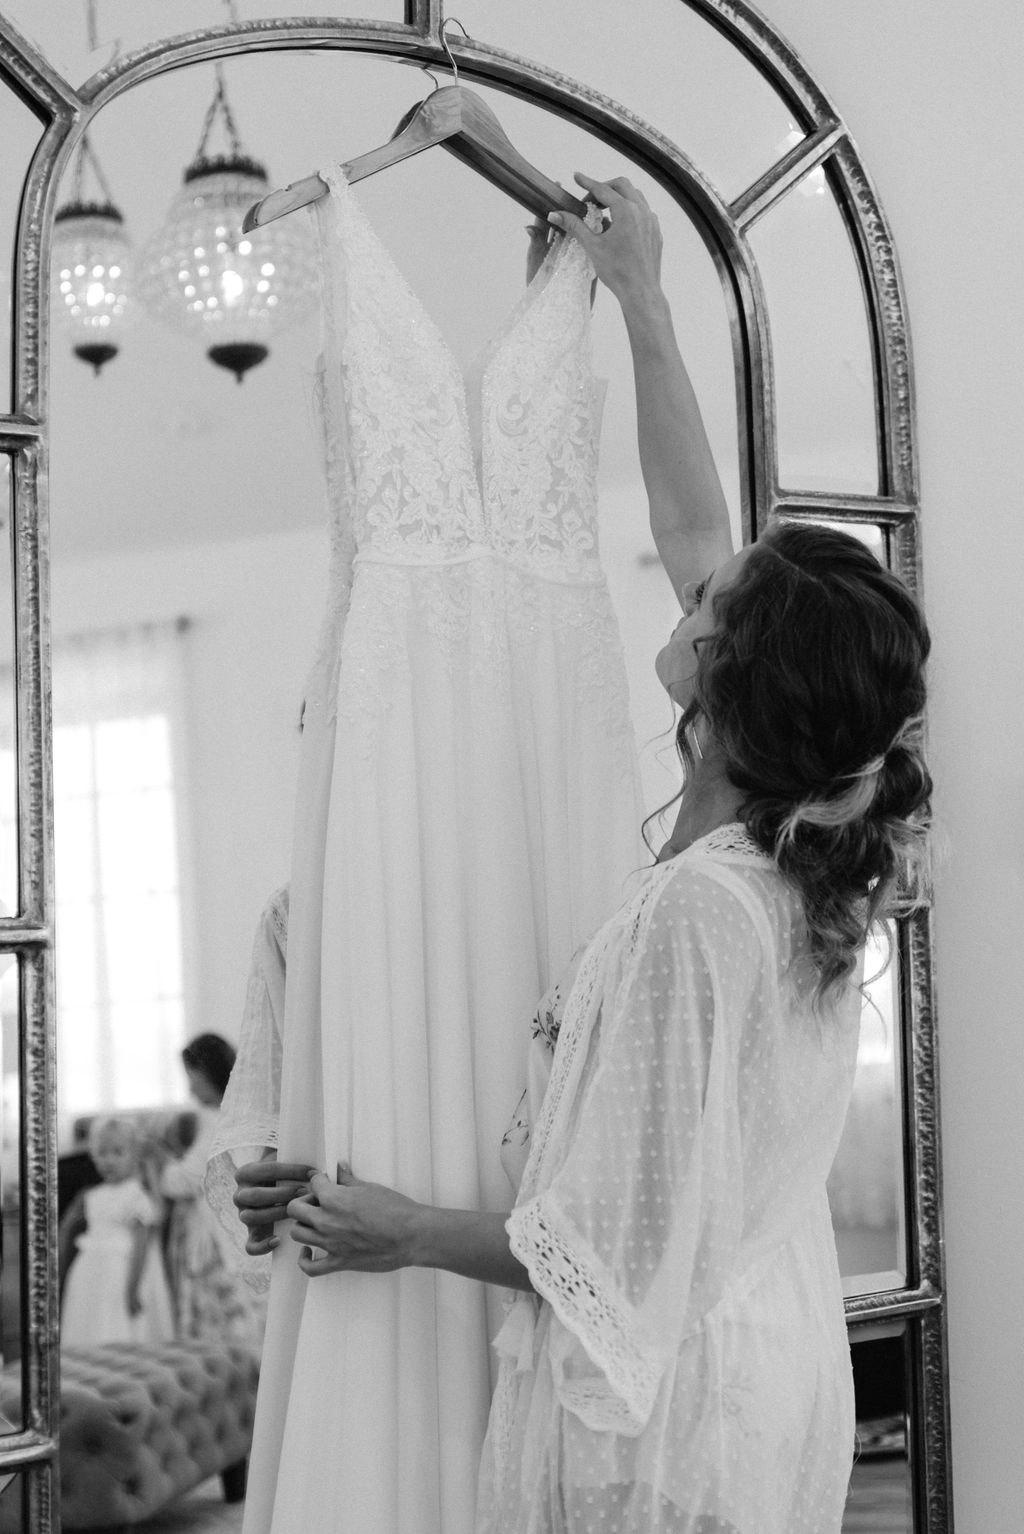 Bride gets ready to put her dress on